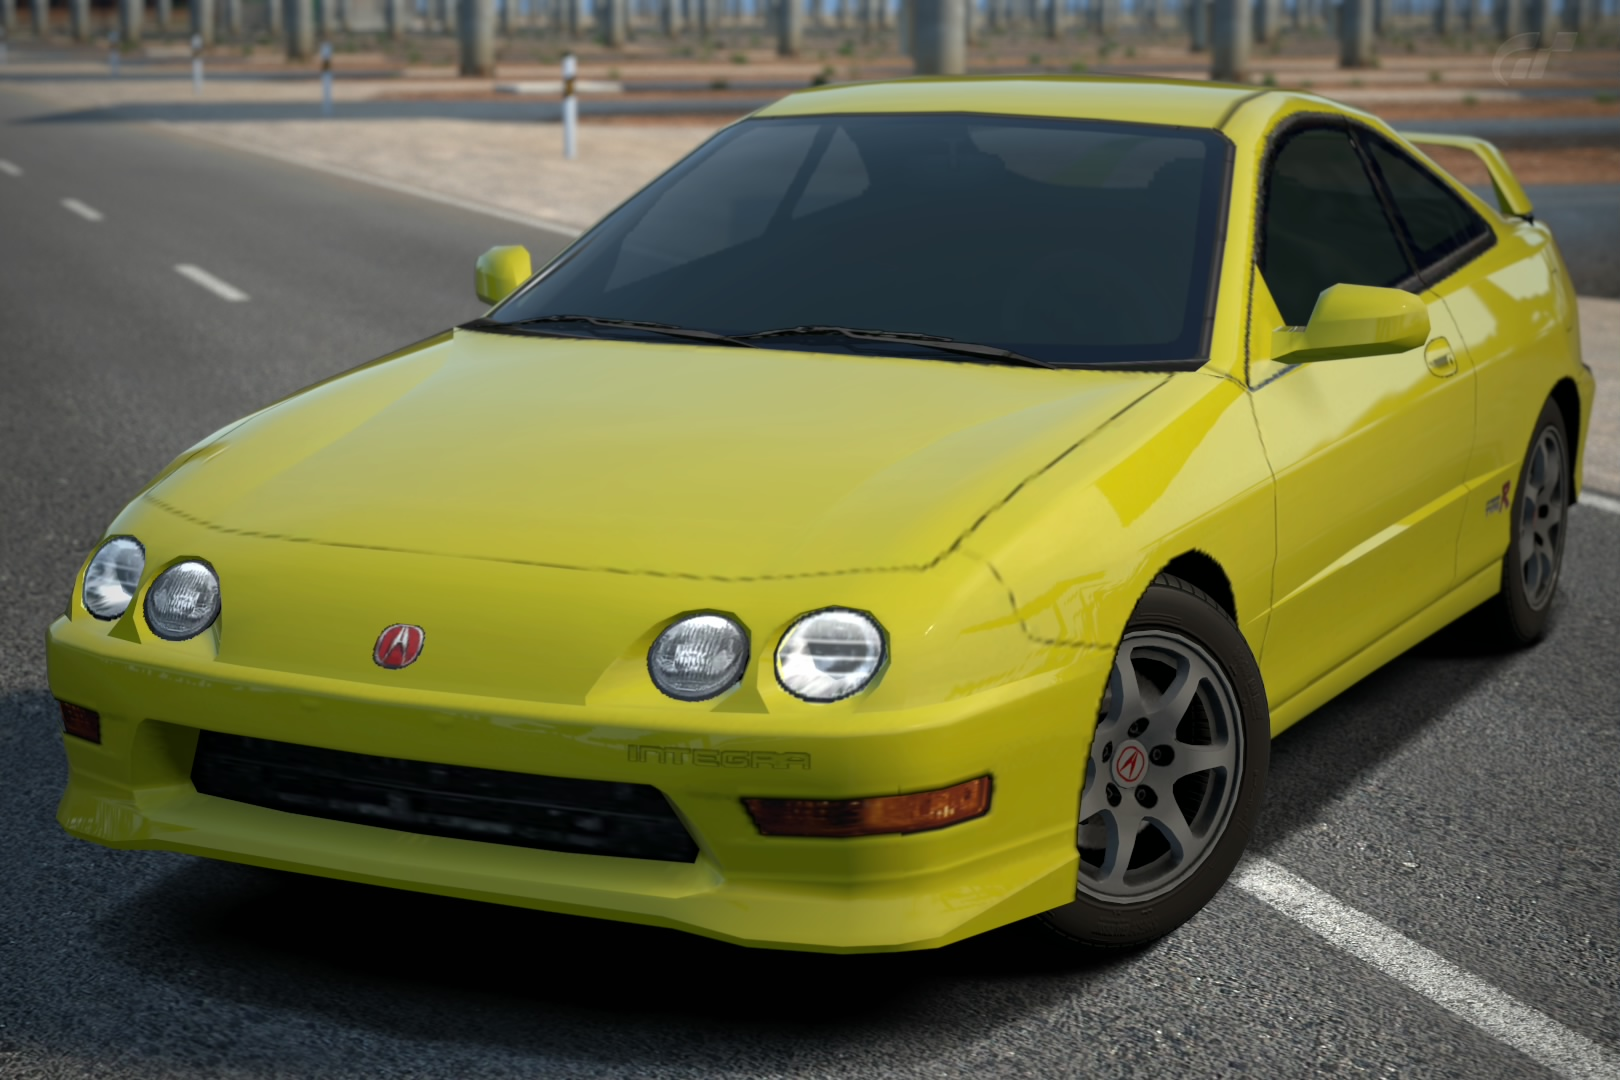 Acura Integra Type R 01 Gran Turismo Wiki Fandom Powered By Wikia 2000 Under Hood